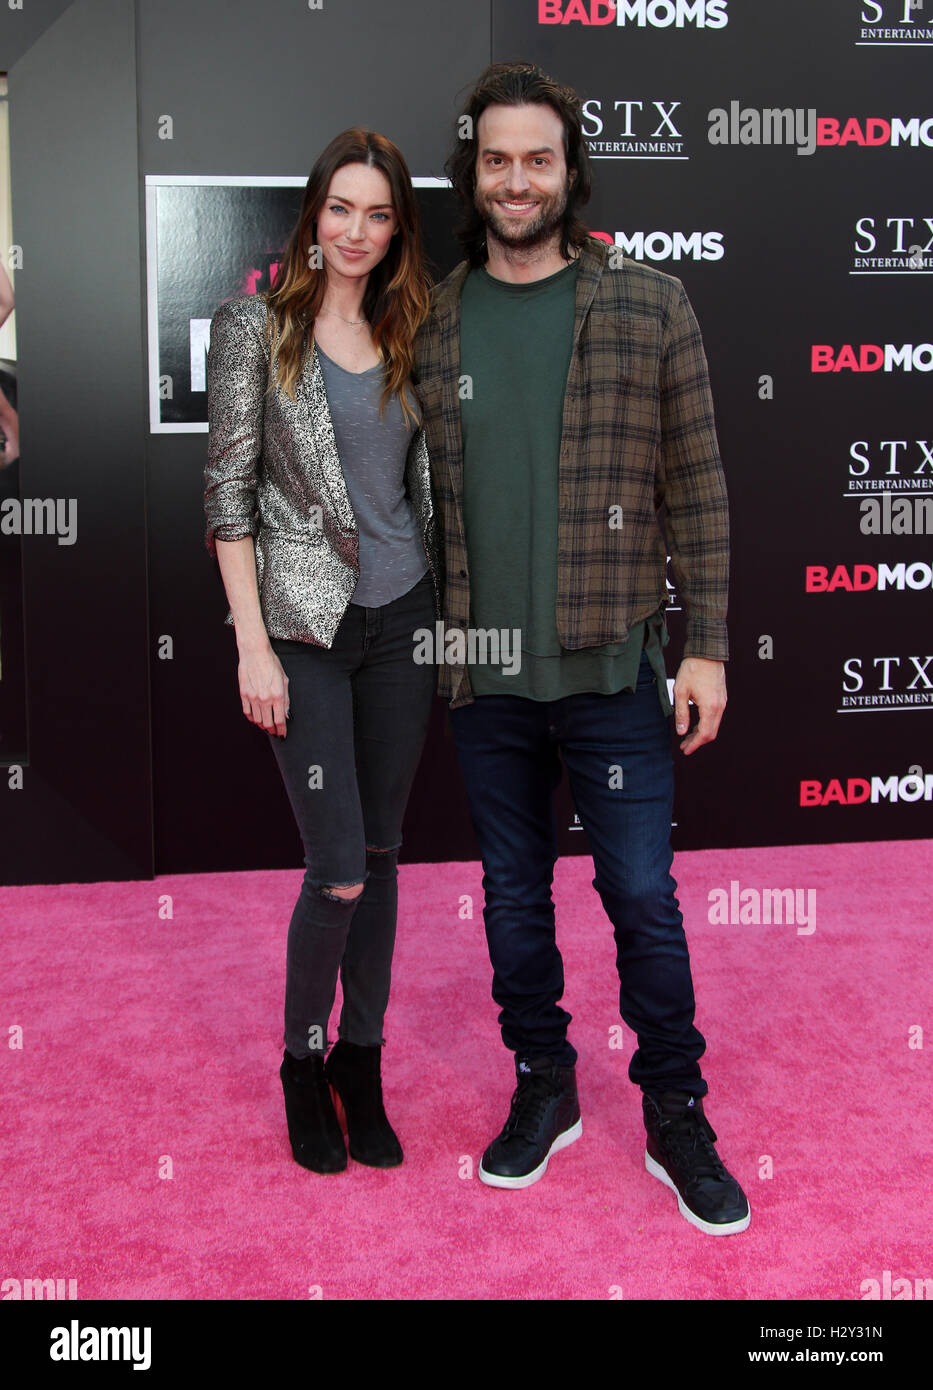 Los Angeles premiere of 'Bad Moms' - Arrivals  Featuring: Cassi Colvin, Chris D'Elia Where: Los Angeles, - Stock Image